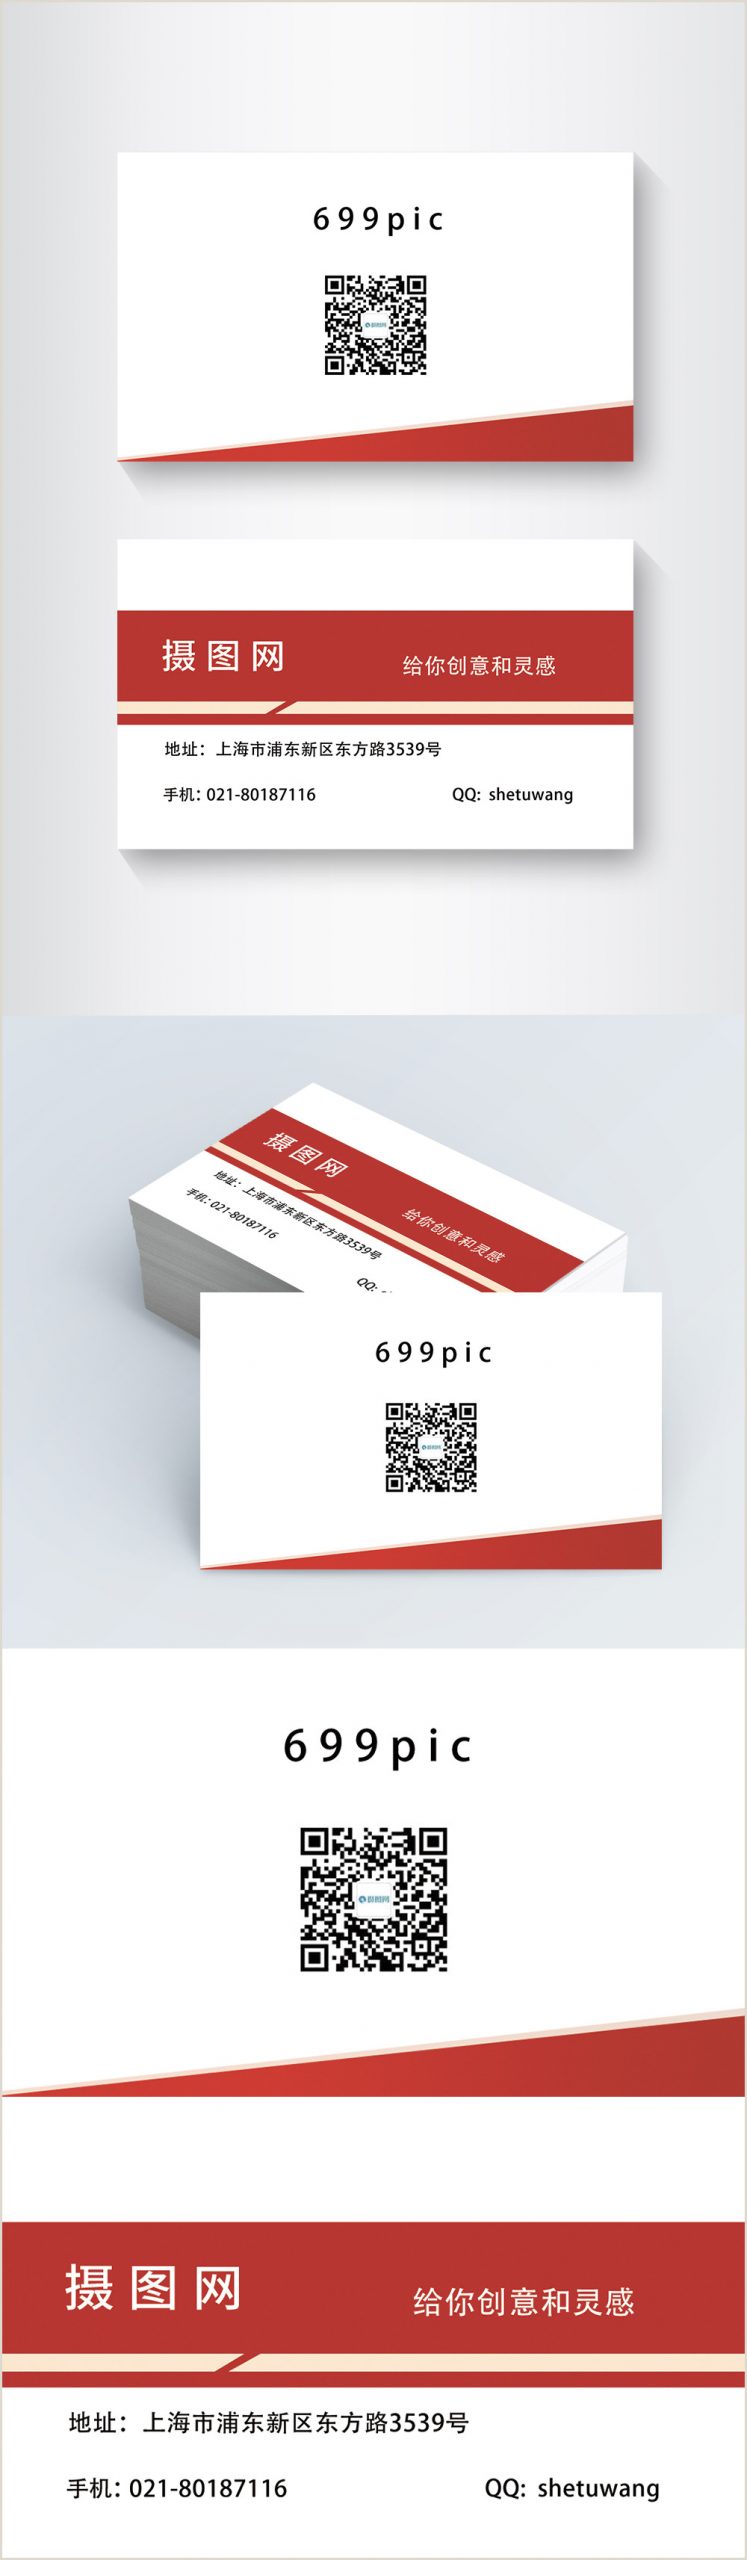 Unique Software Company Business Cards Unique Business Card Template Image Picture Free